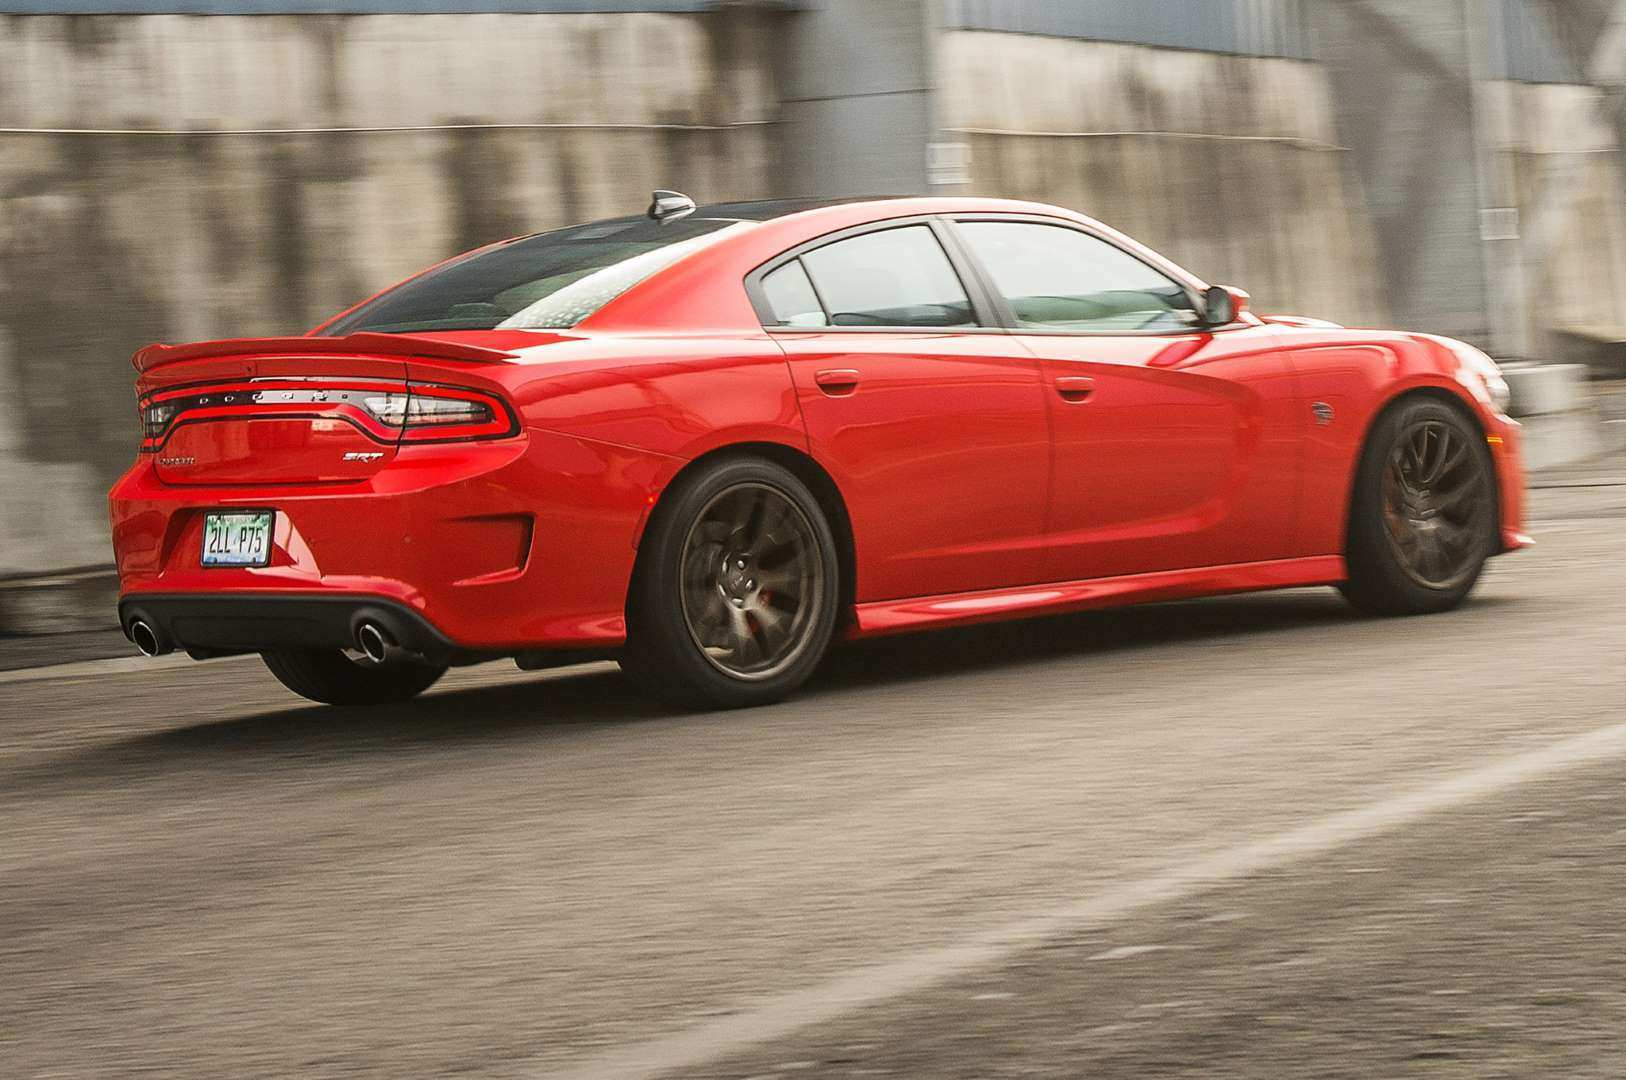 66 The 2020 Dodge Charger SRT8 Spy Shoot